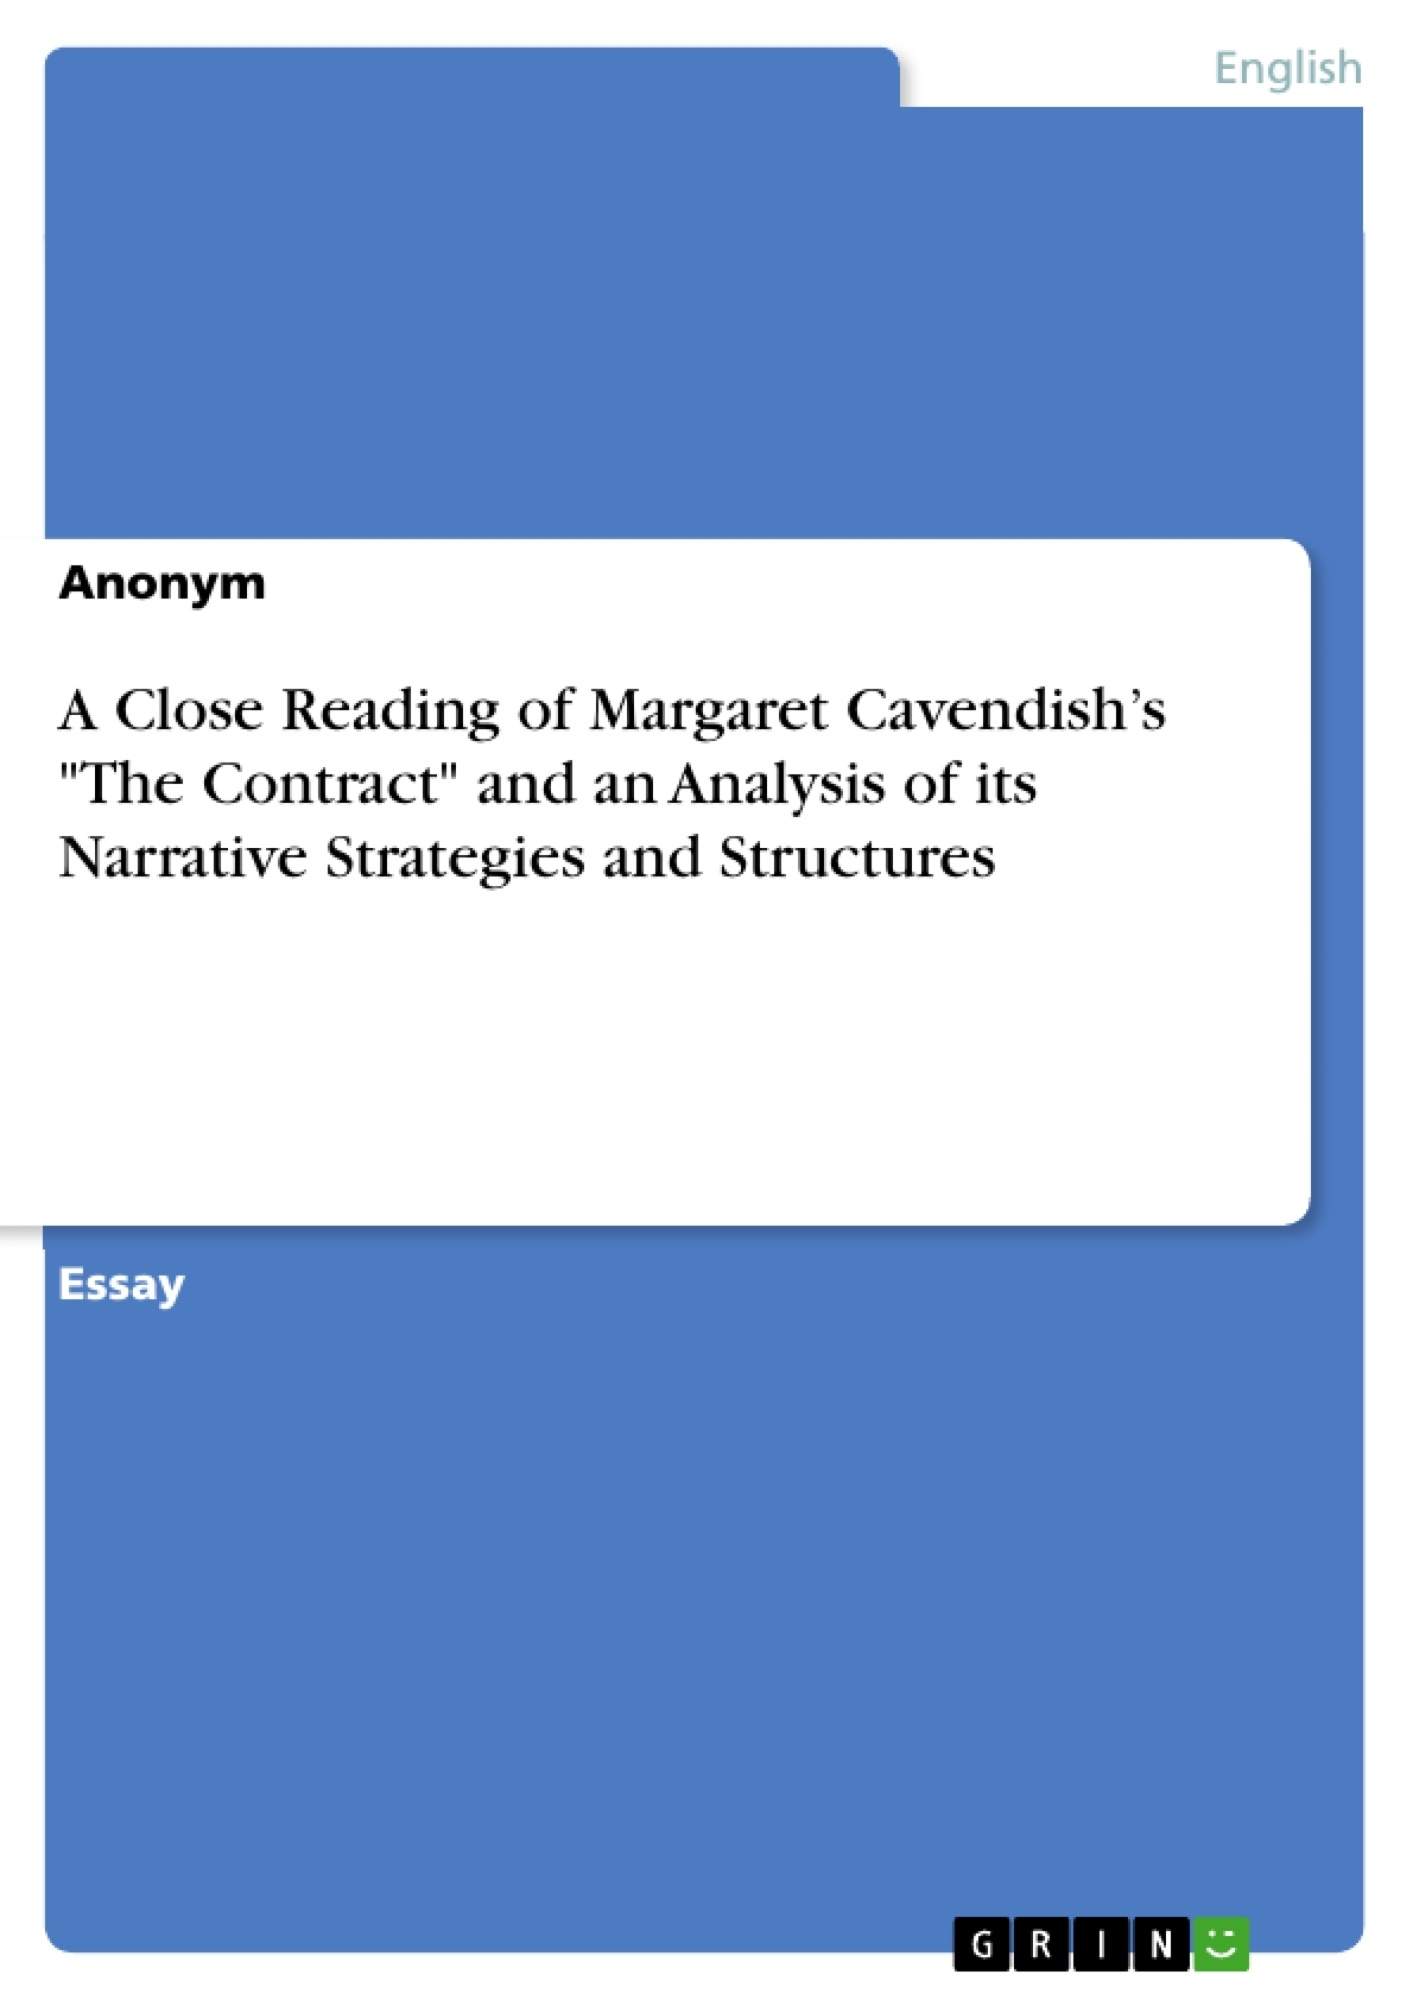 """Title: A Close Reading of Margaret Cavendish's """"The Contract"""" and an Analysis of its Narrative Strategies and Structures"""